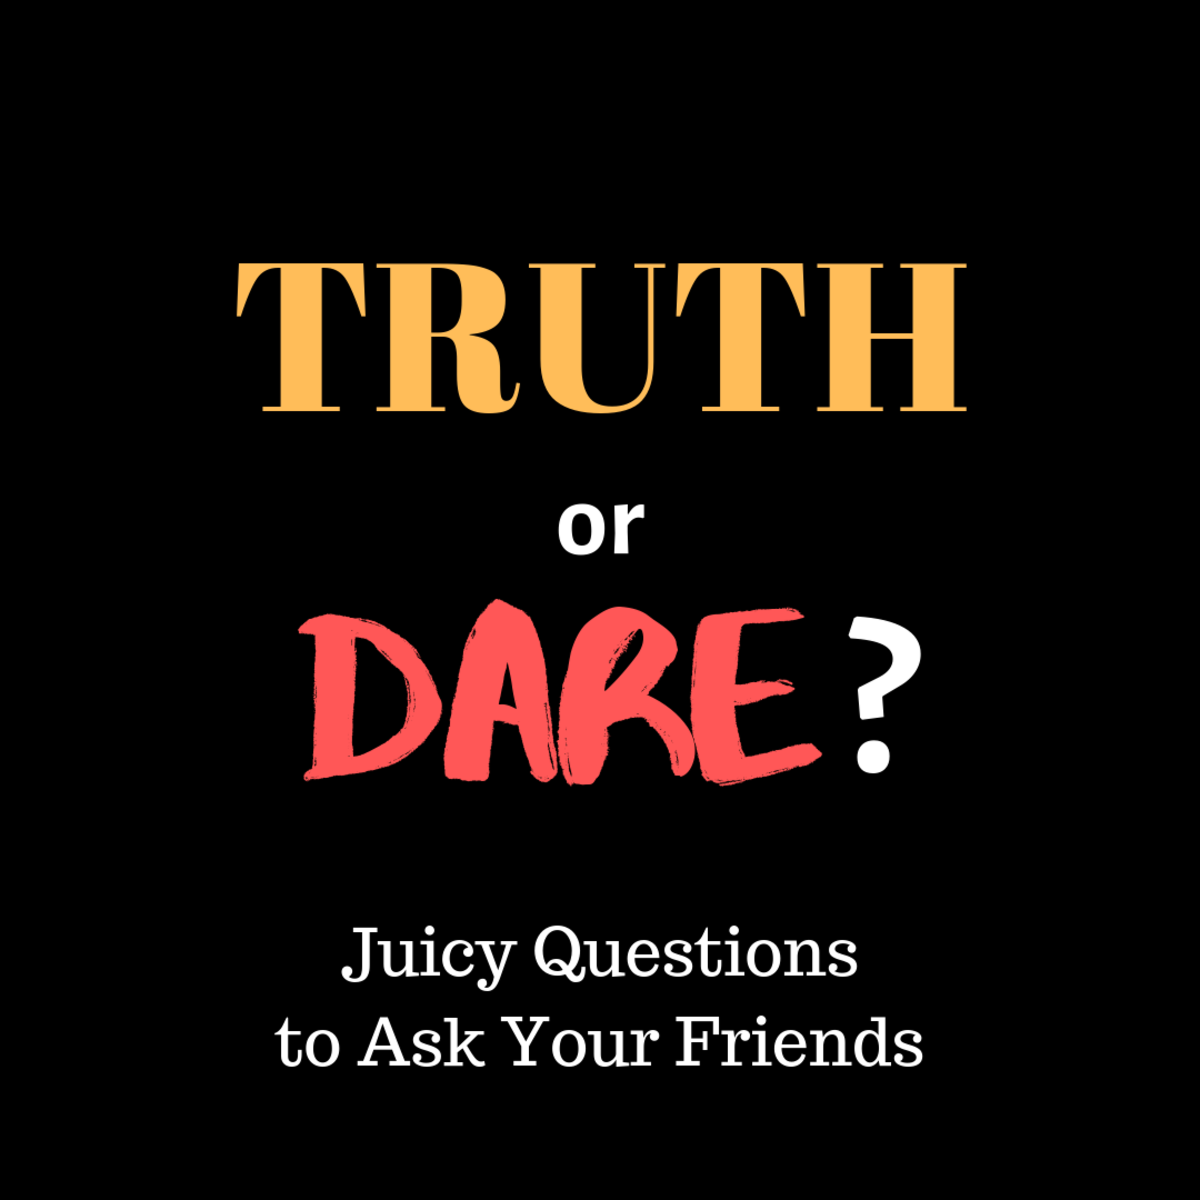 Good Truth or Dare Questions: The Best Things to Ask